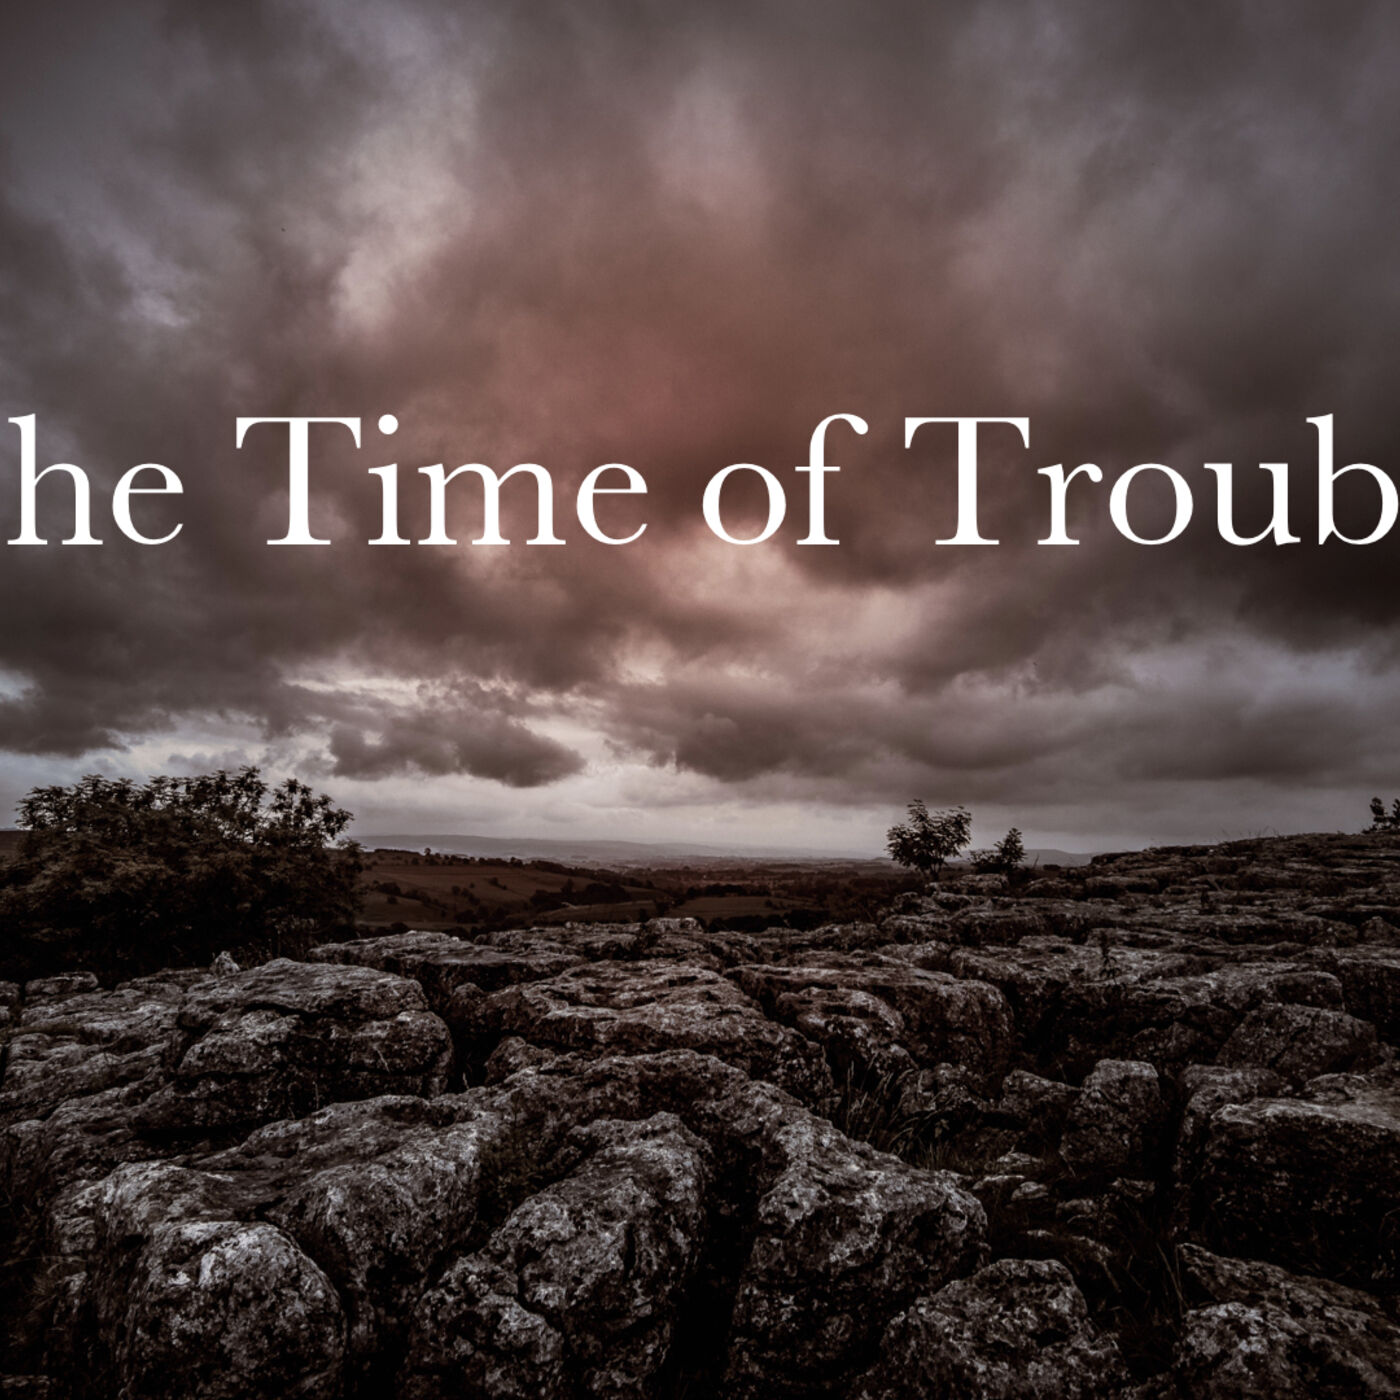 The Time of Trouble